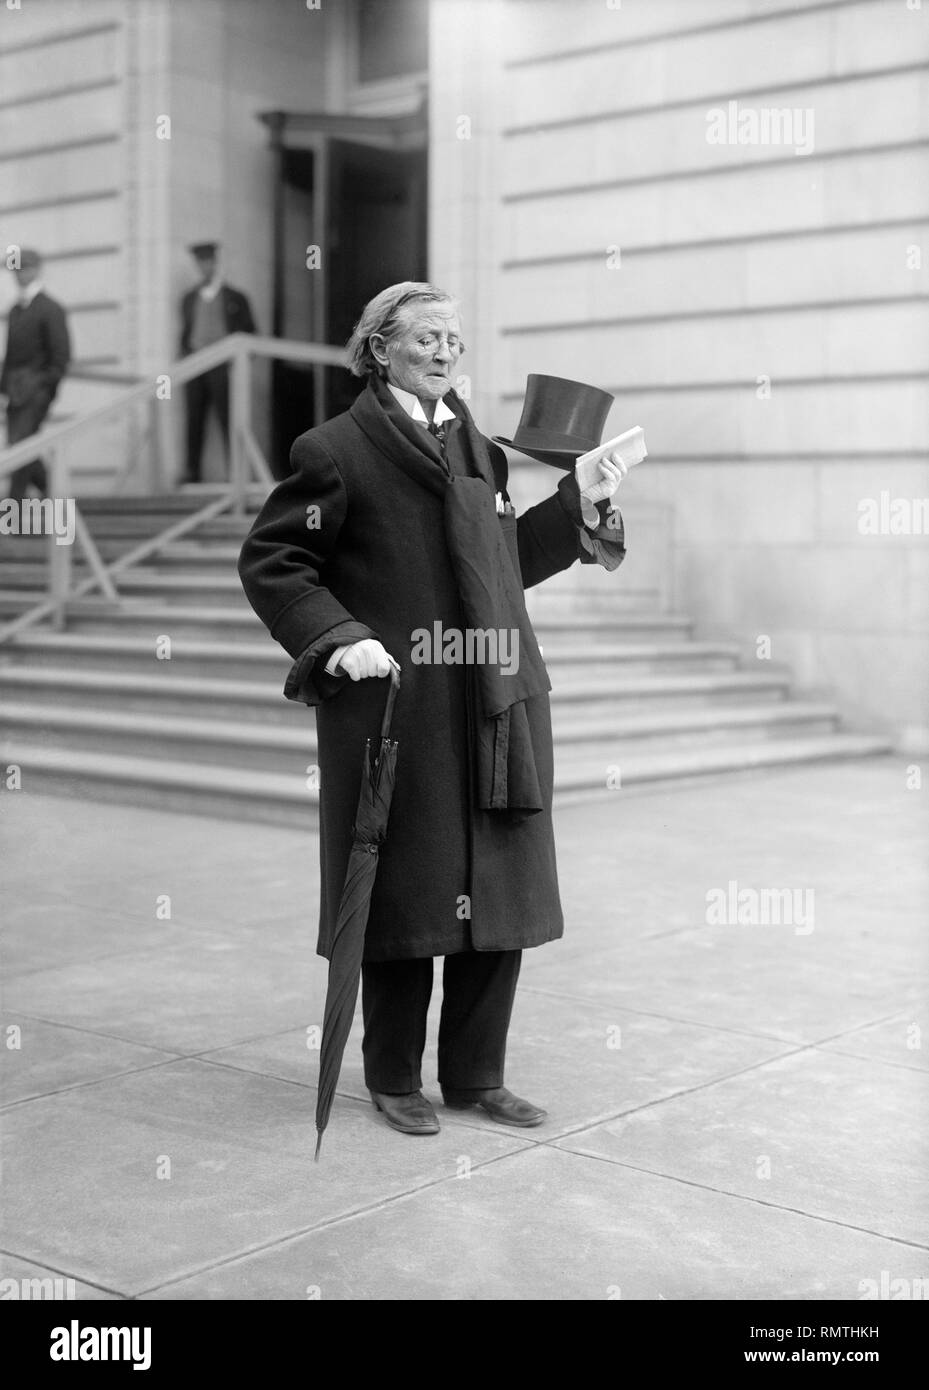 Doctor Mary Edwards Walker, only Female Recipient of Medal of Honor, Full-Length Portrait with Umbrella and Top Hat, Washington DC, USA, Harris & Ewing, 1911 - Stock Image